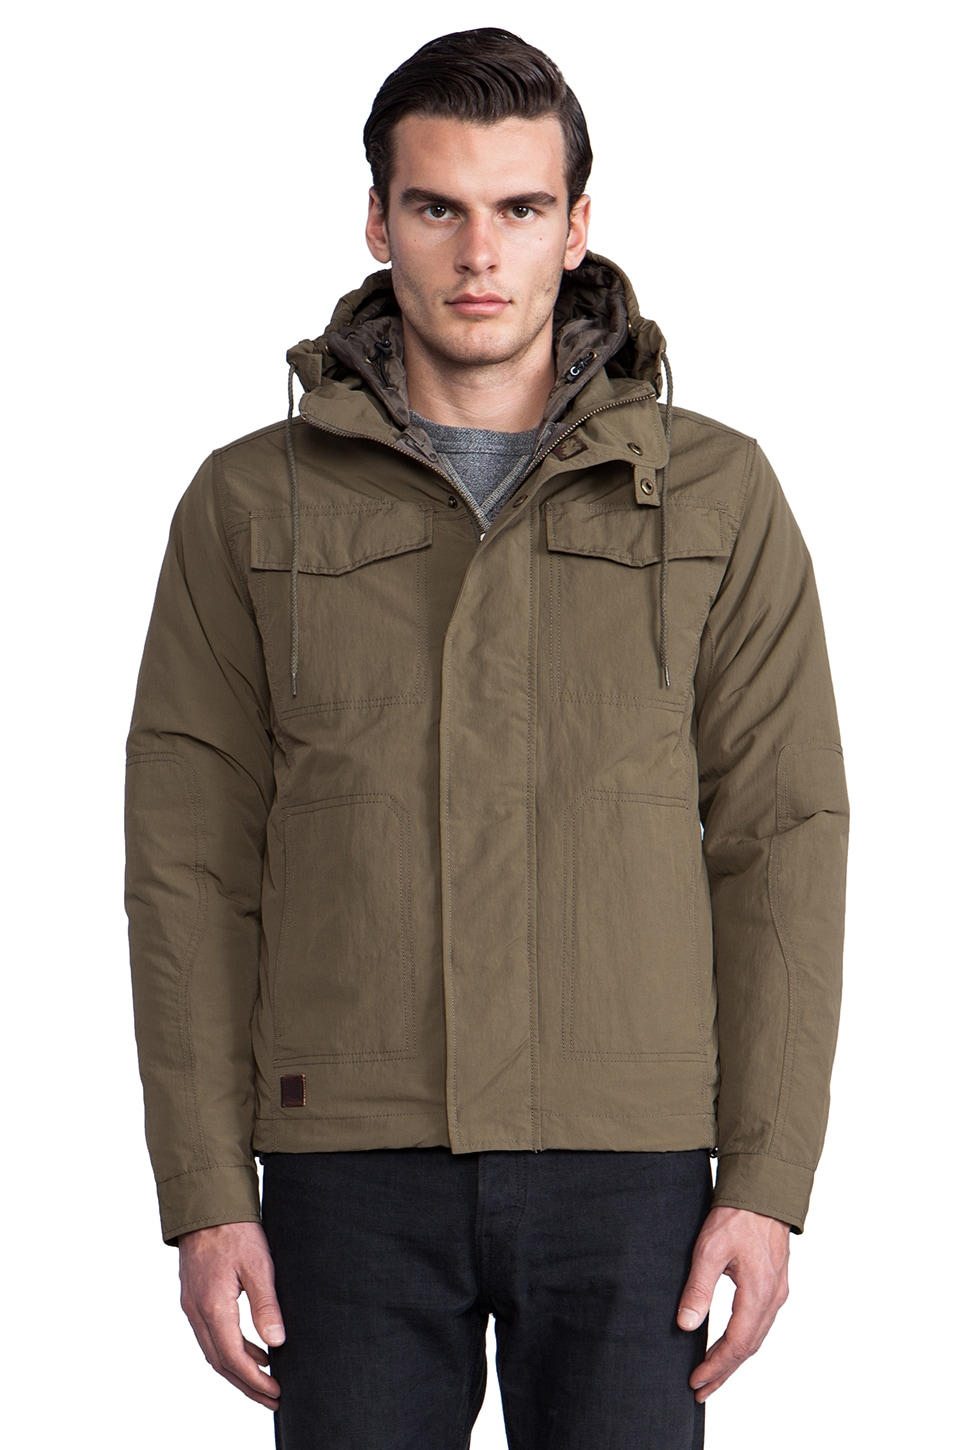 Spiewak Carson Field Jacket in Surplus Olive